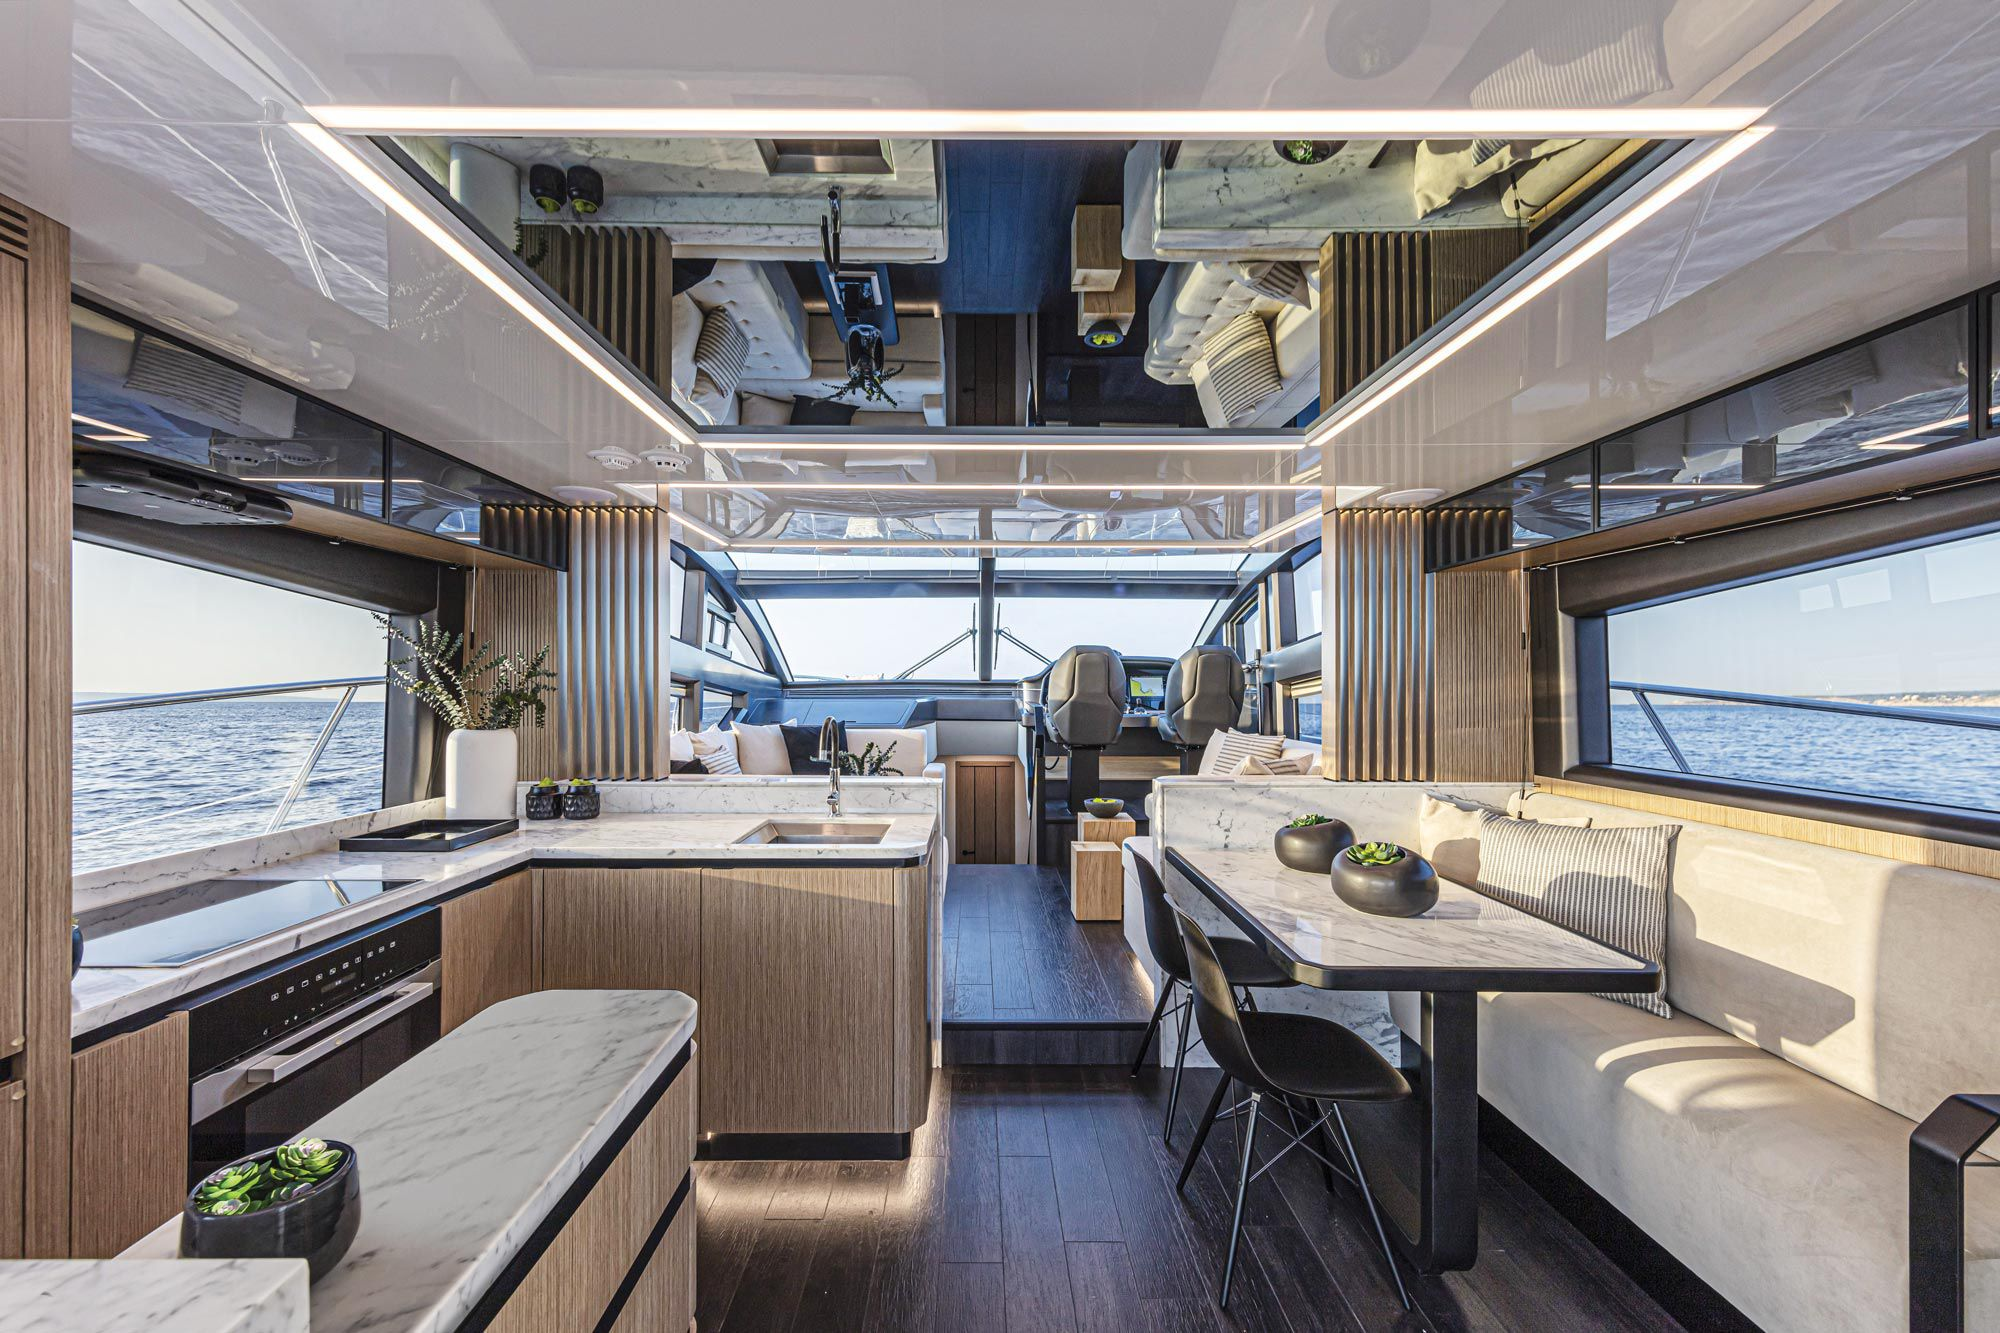 The main deck had a galley aft and to port, with the optional dinette to starboard.